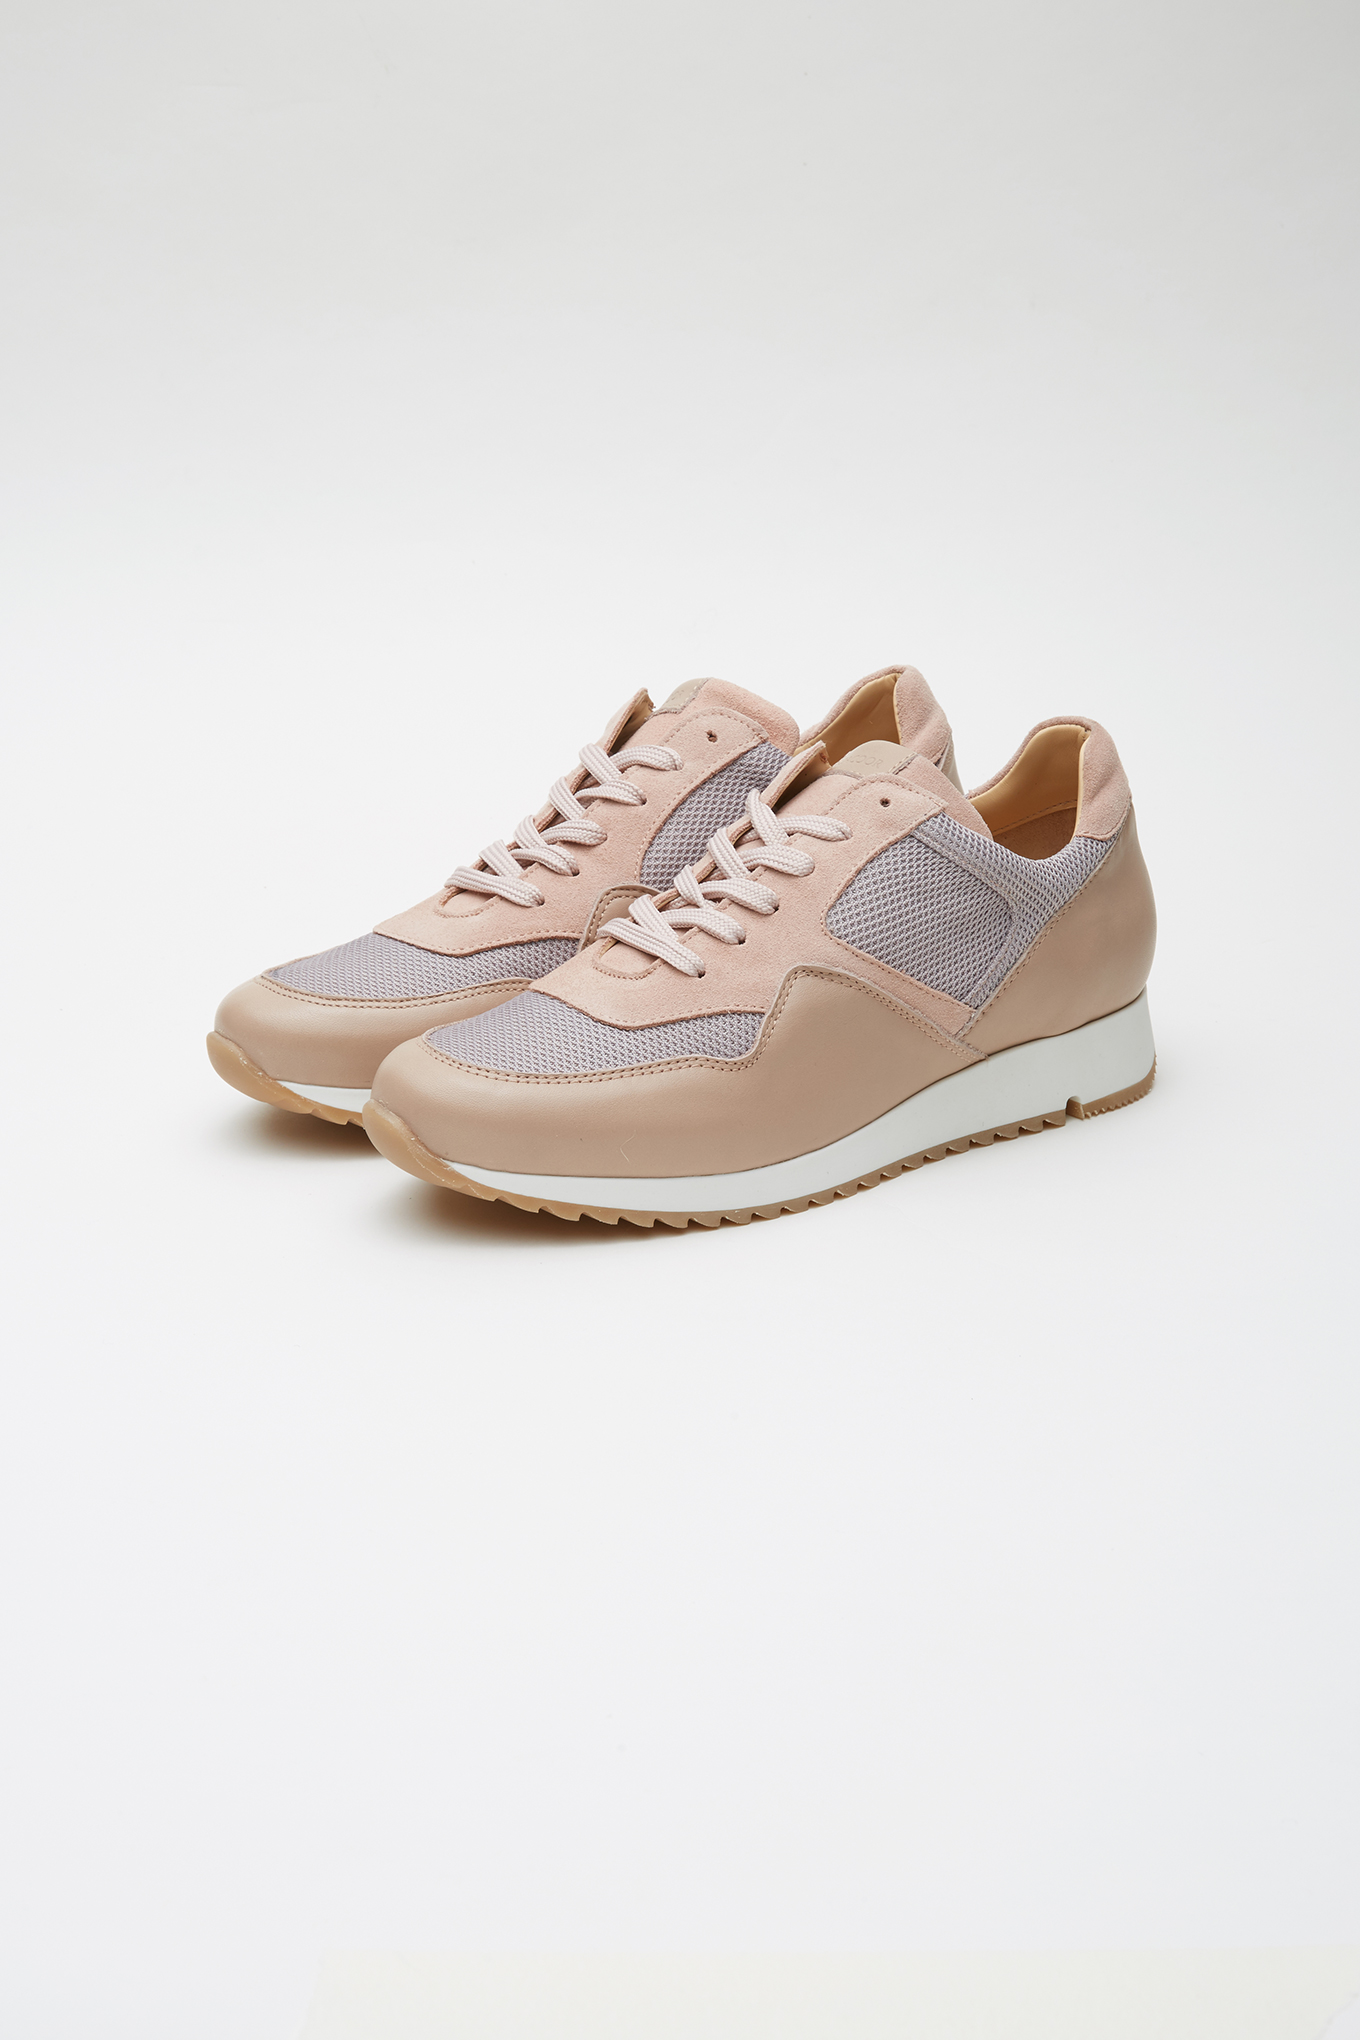 Tenis Rosa Pálido Casual Mulher